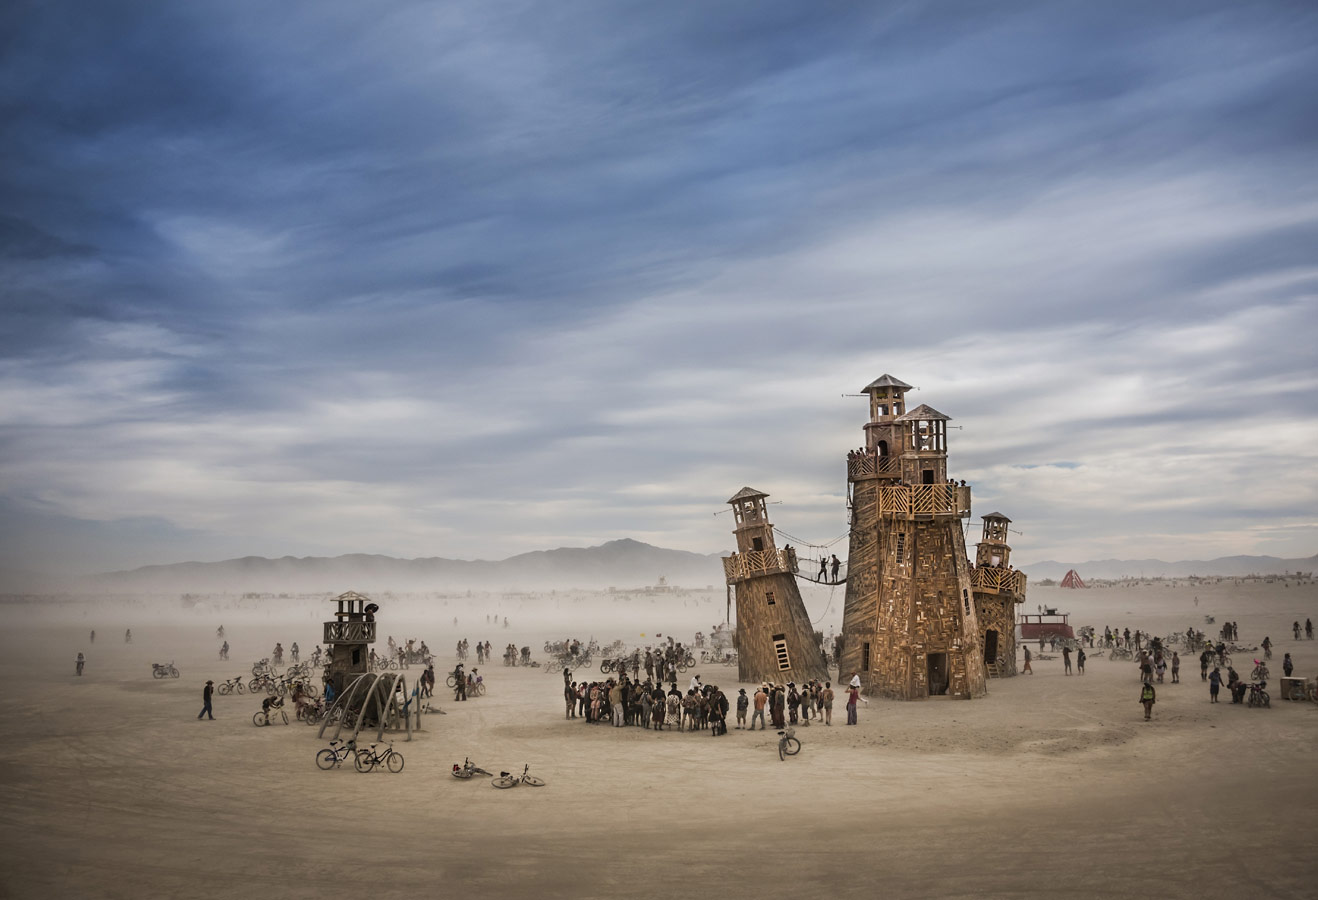 Photographer: Tom Stahl, Project: Black Rock Lighthouse Service in the Nevada desert, USA, Architectural Photography Awards